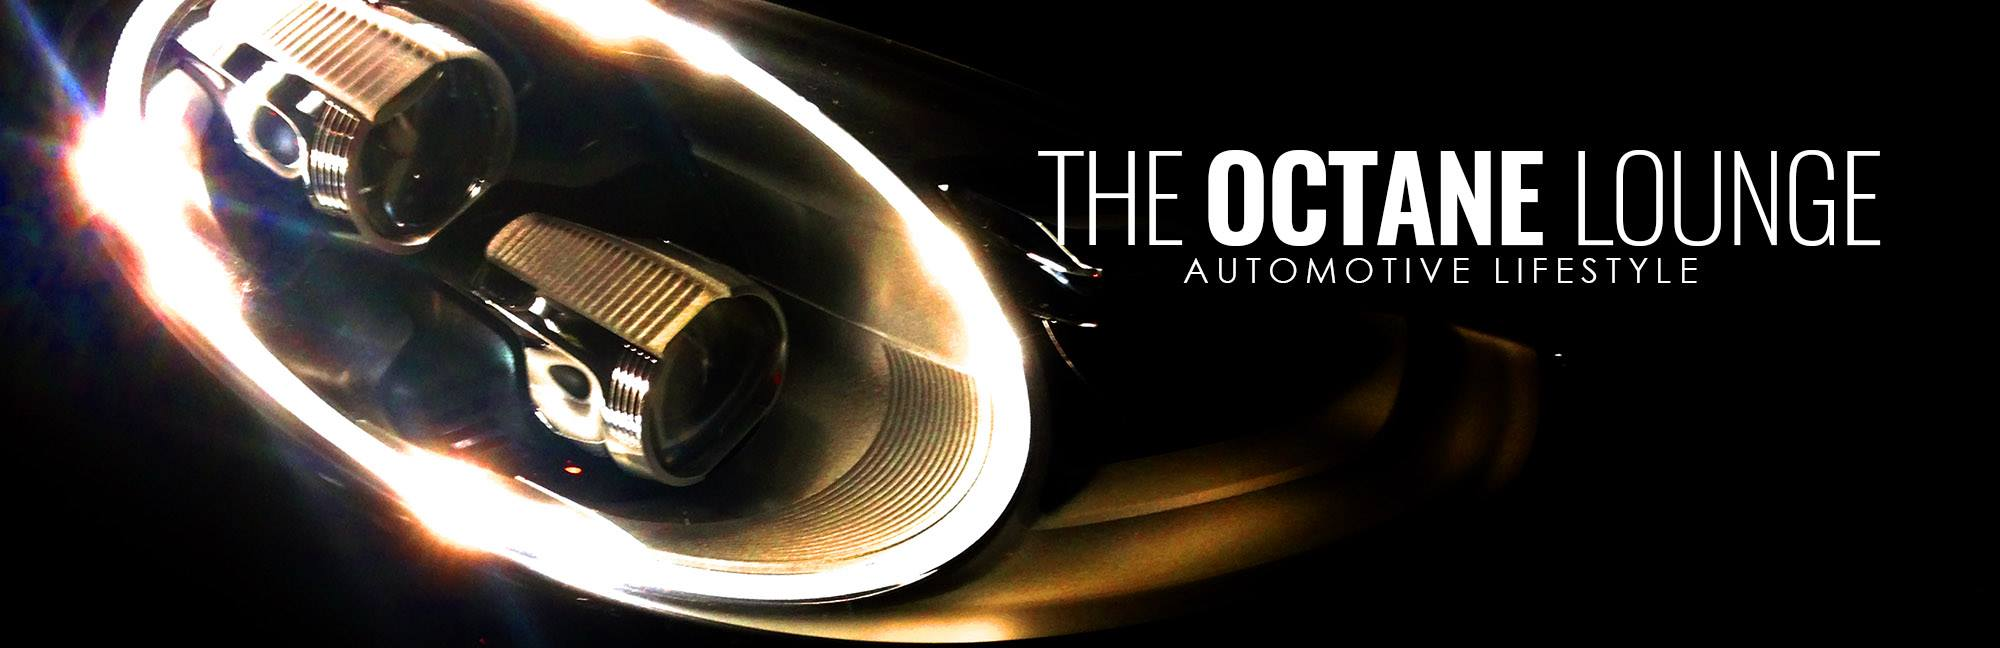 The Octane Lounge | Not Just Another Car Site!